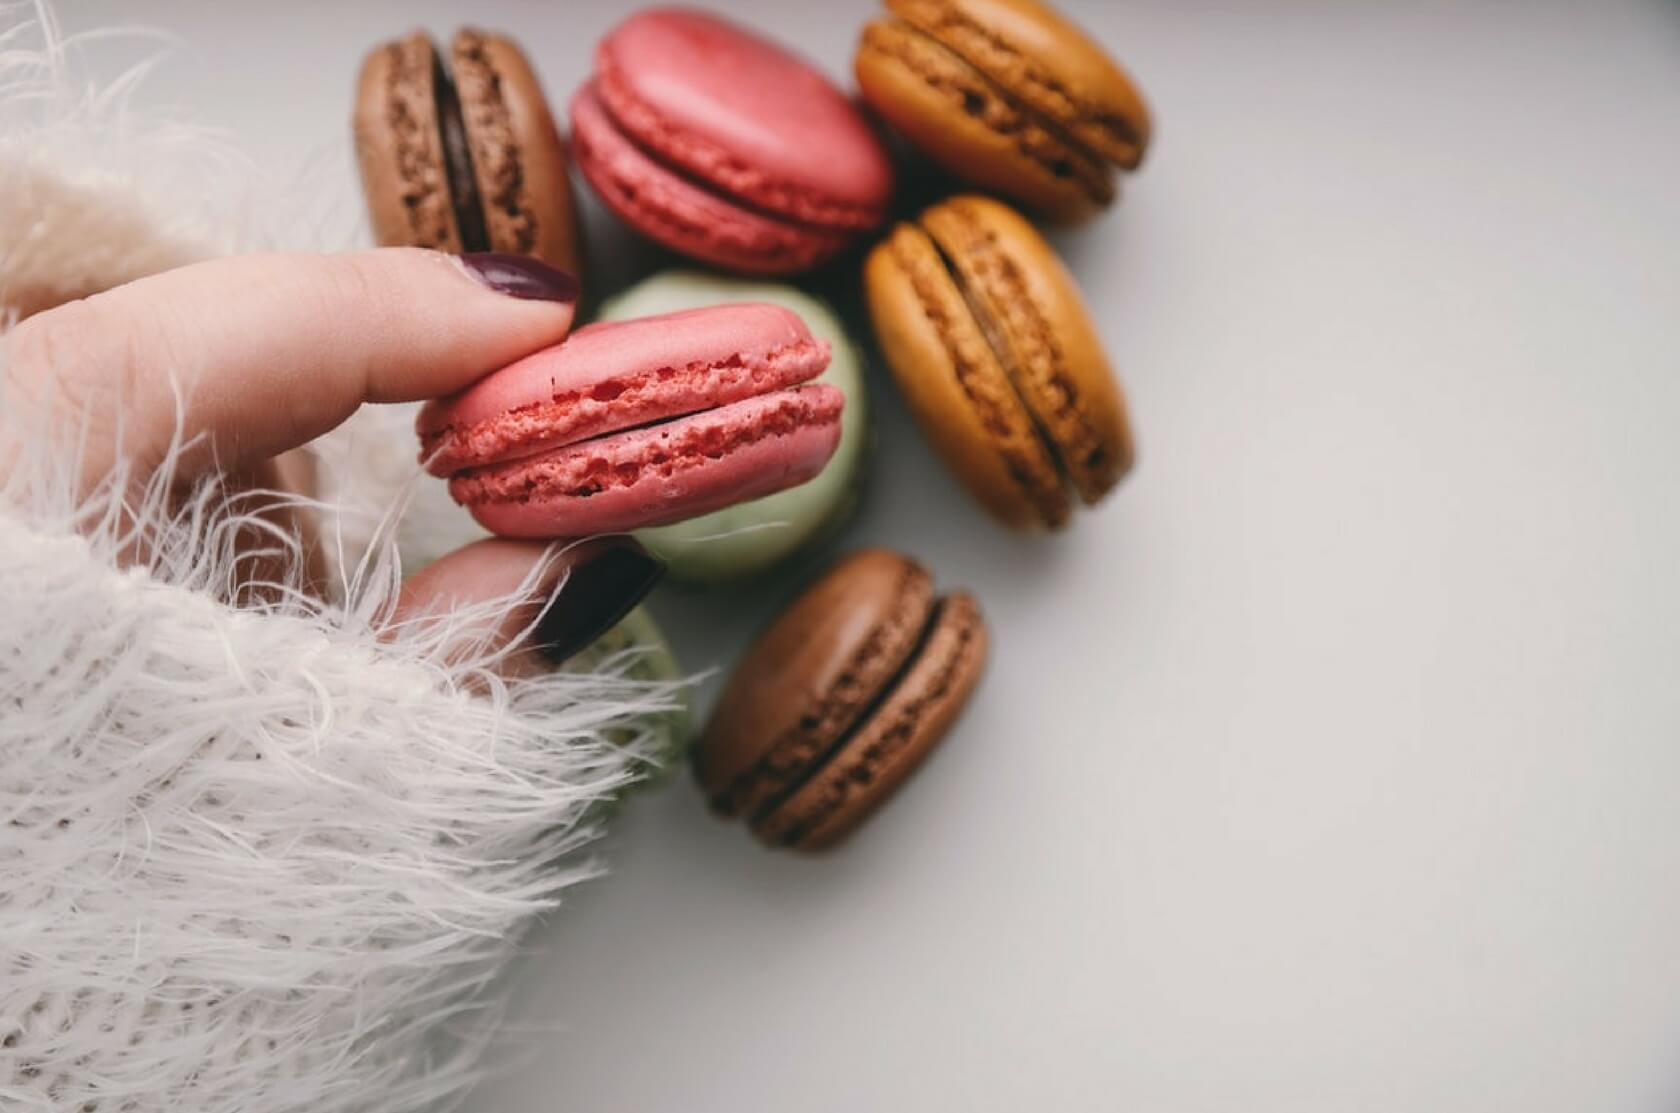 Short movies are short and sweet like French macarons